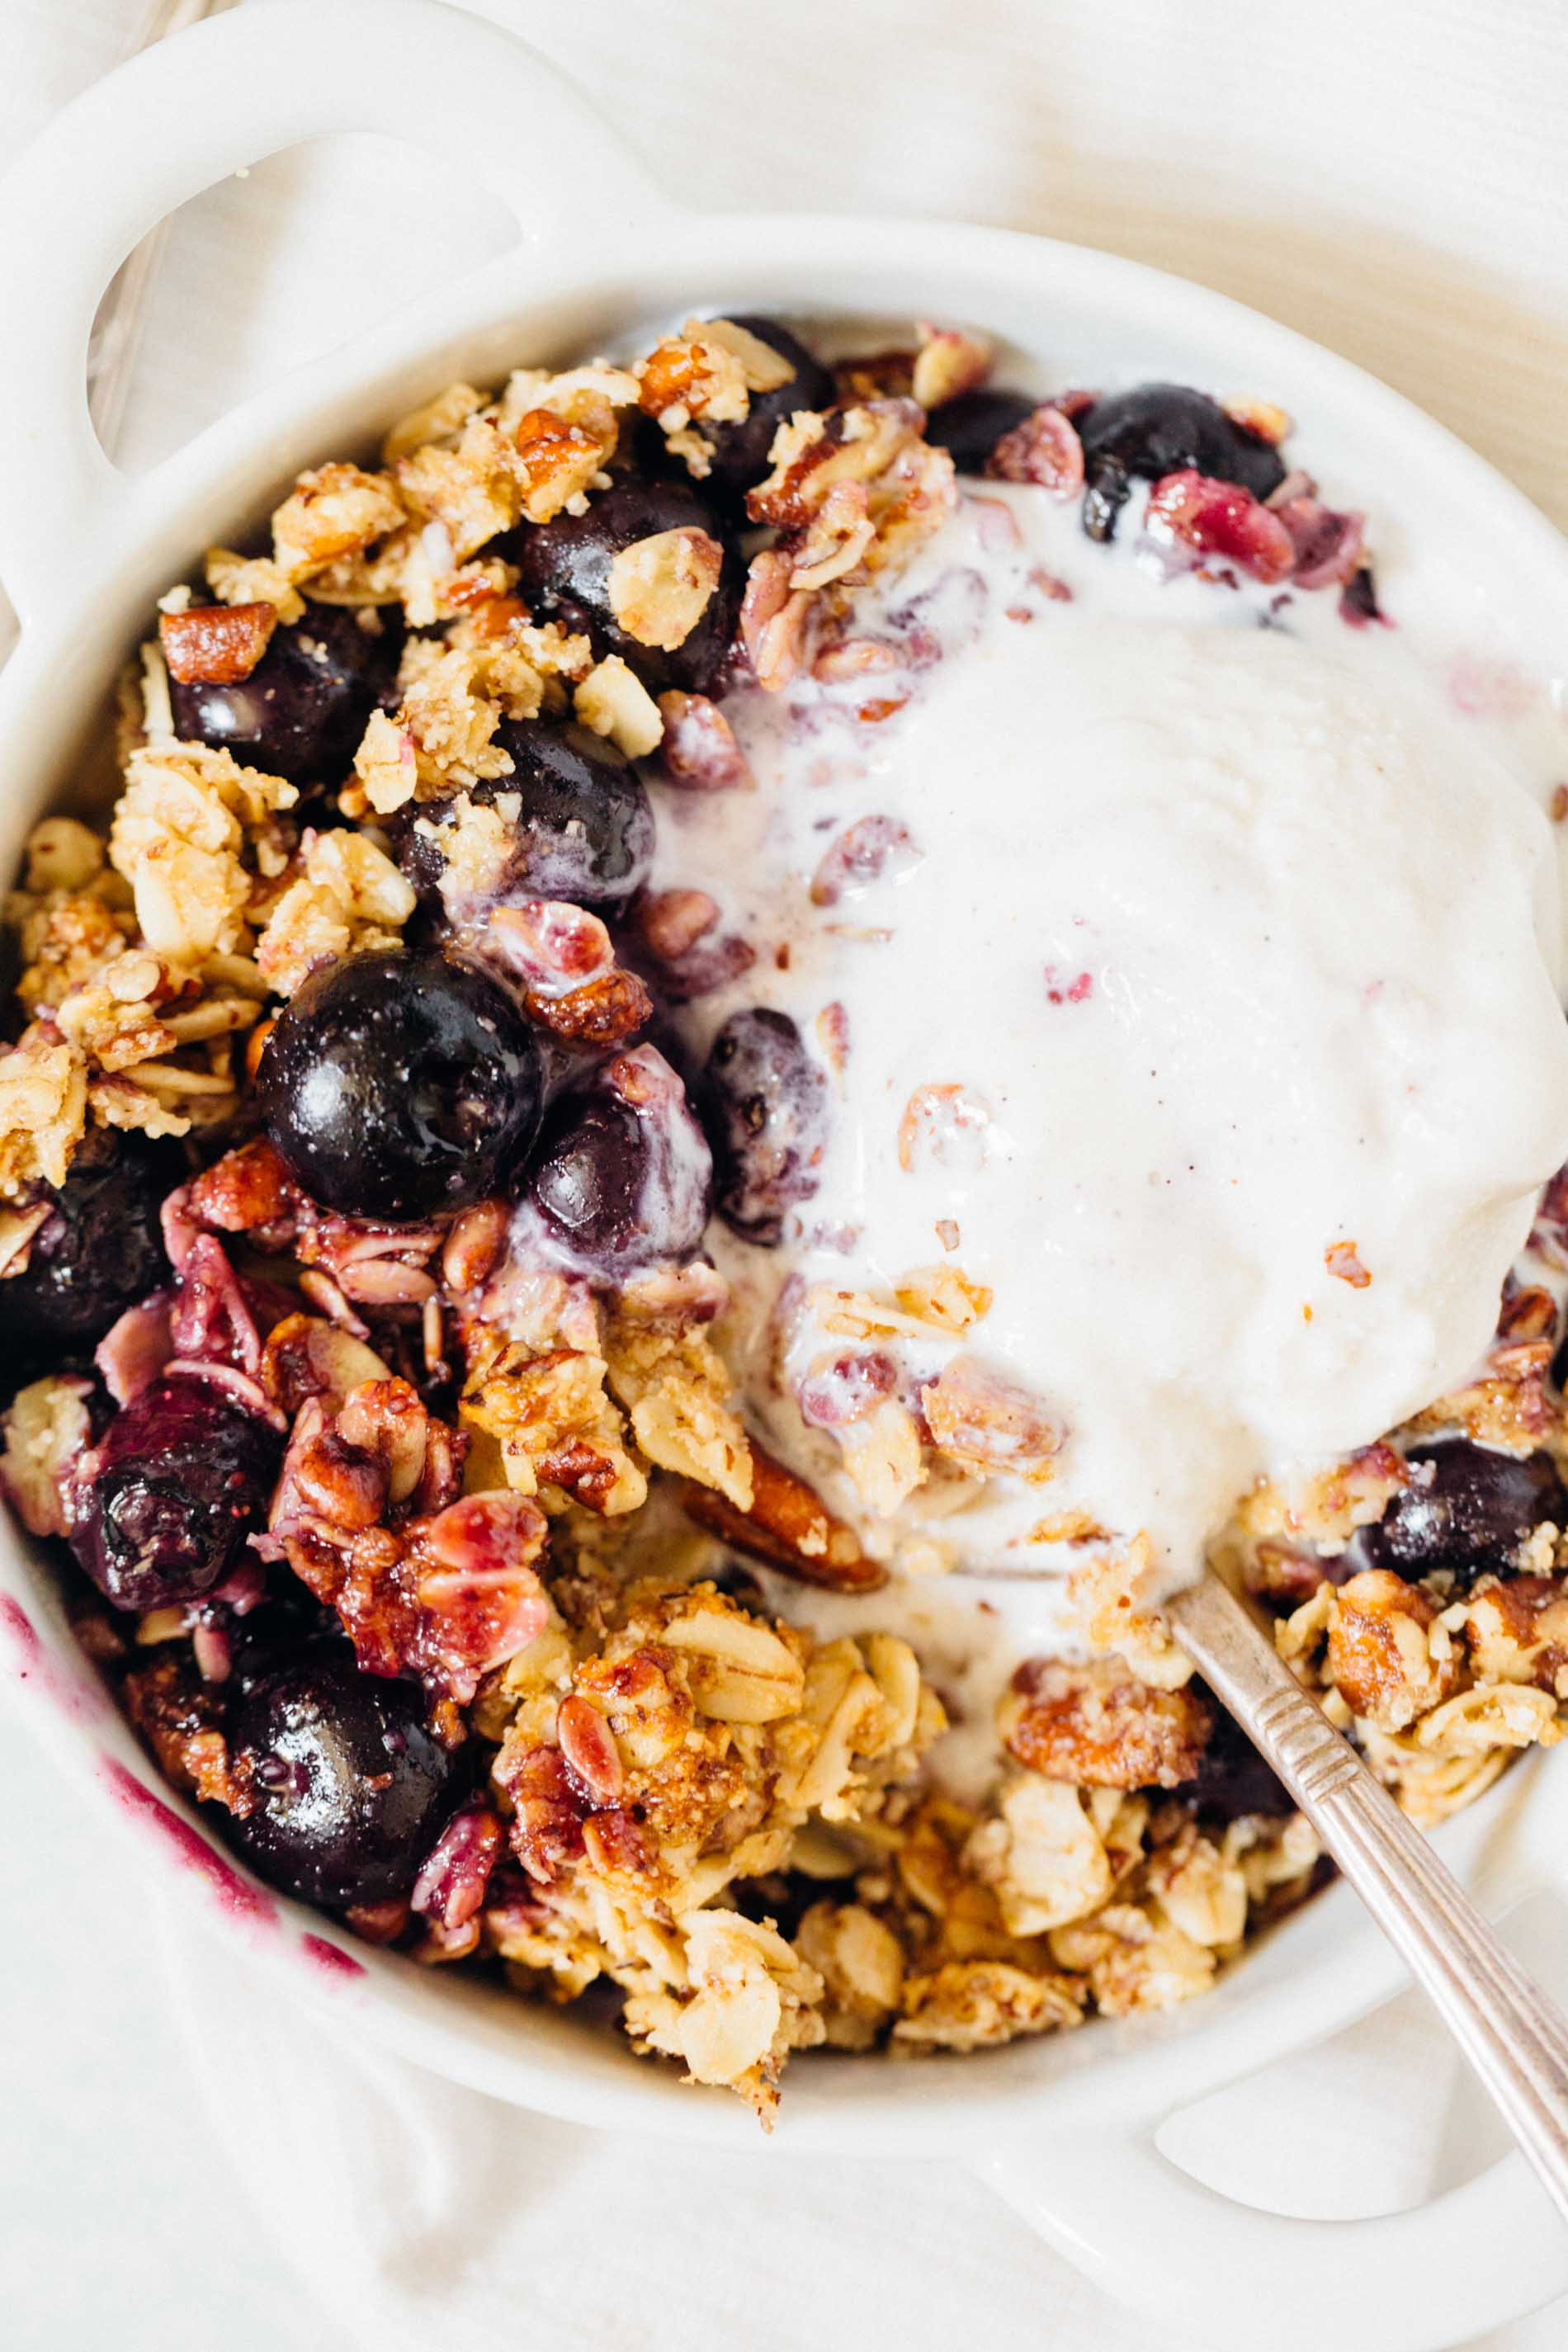 This blueberry pecan crumble is effortless to put together but it is an exceptional dessert to have to finish off any dinner party or get-together! #blueberrycrumble #blueberrypecan #blueberry #pecan #blueberrydessert #dessert #summerdessert